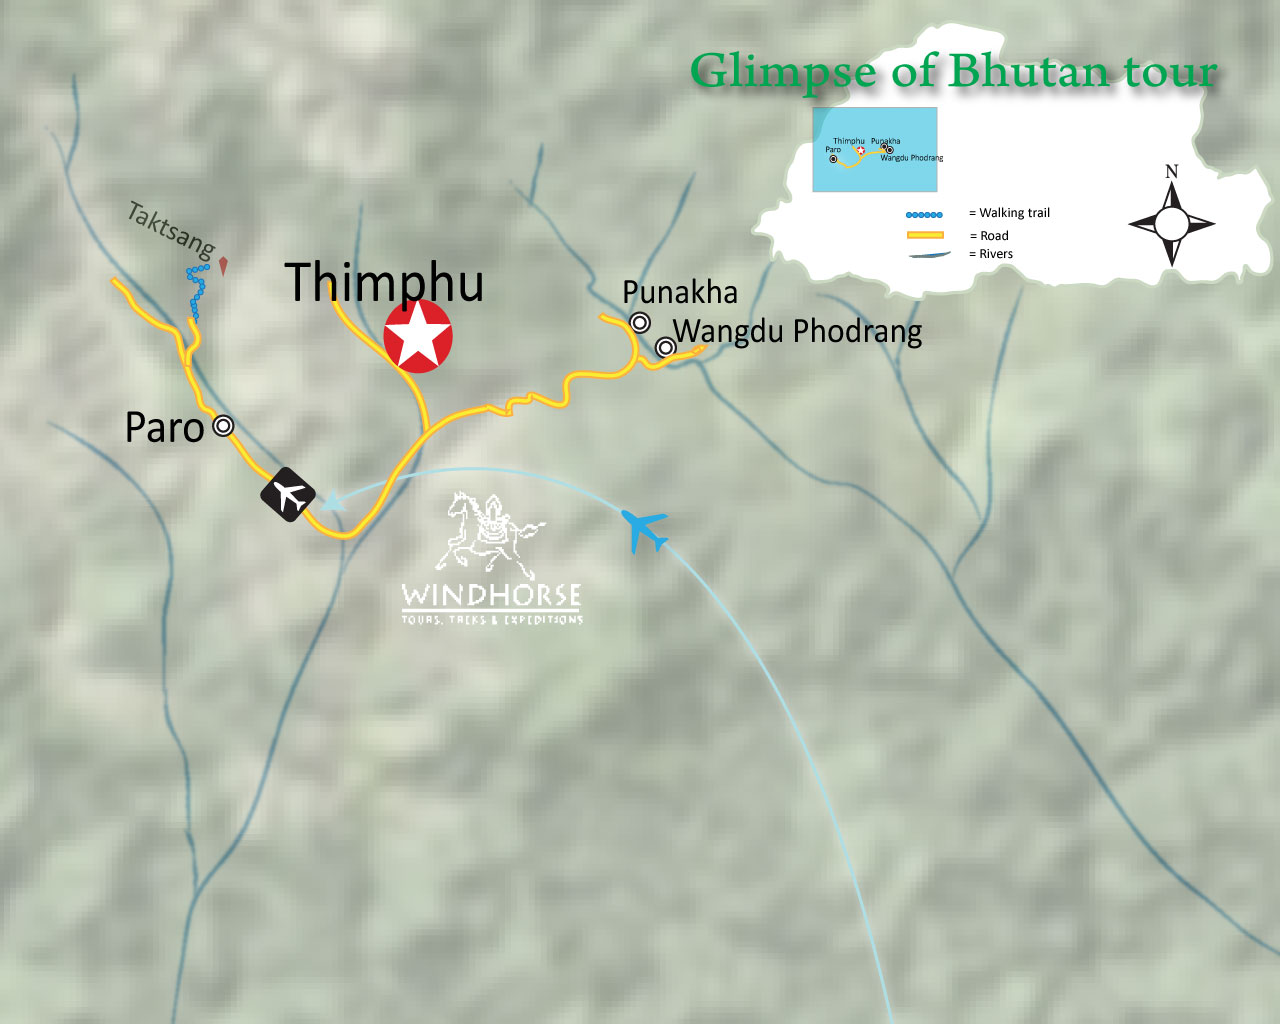 Glimpses of Bhutan Trip Map, Route Map